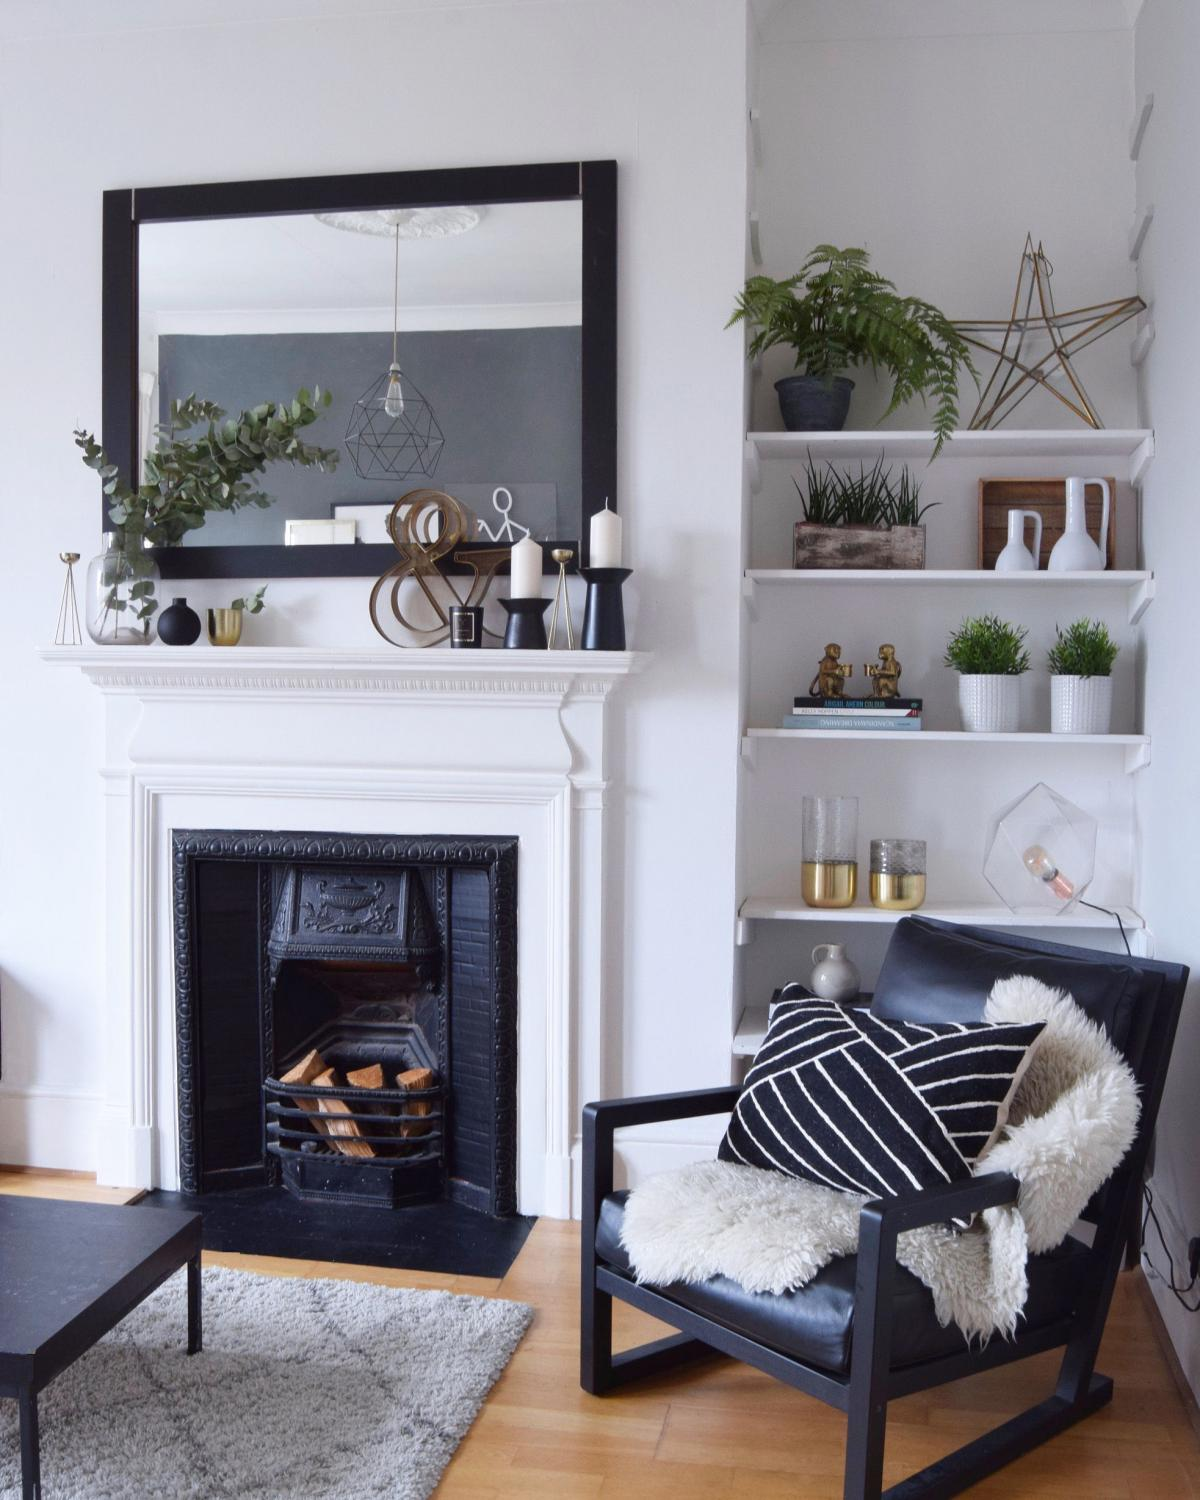 Small spaces, big ideas: 7 secrets for making the most of every ...